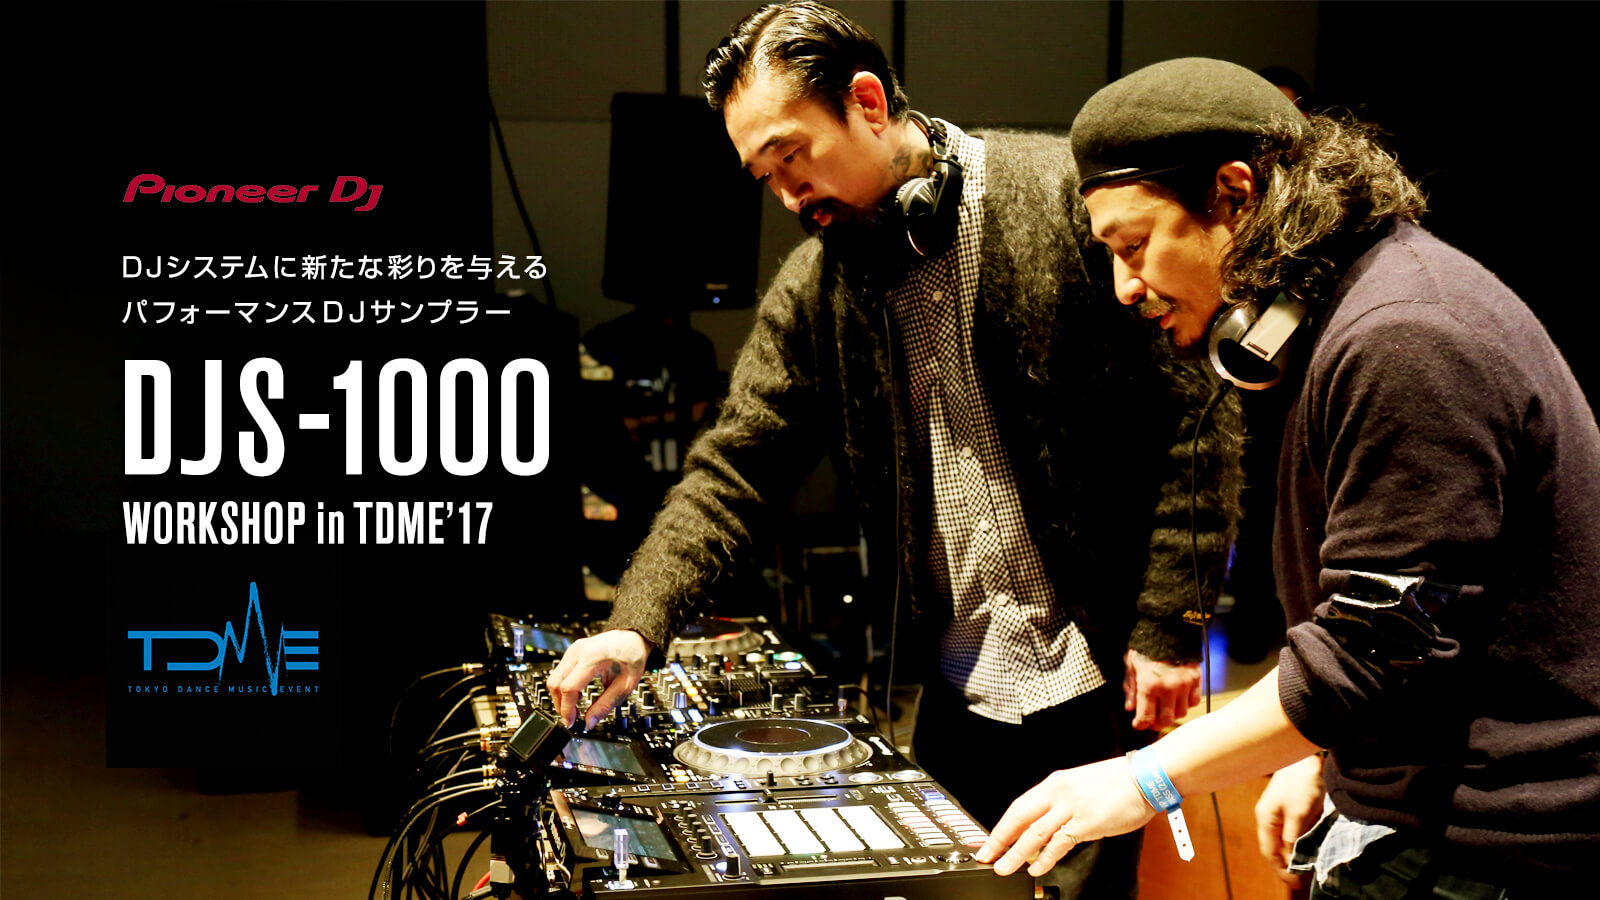 Pioneer DJ DJS-1000 Workshop in TDME'17